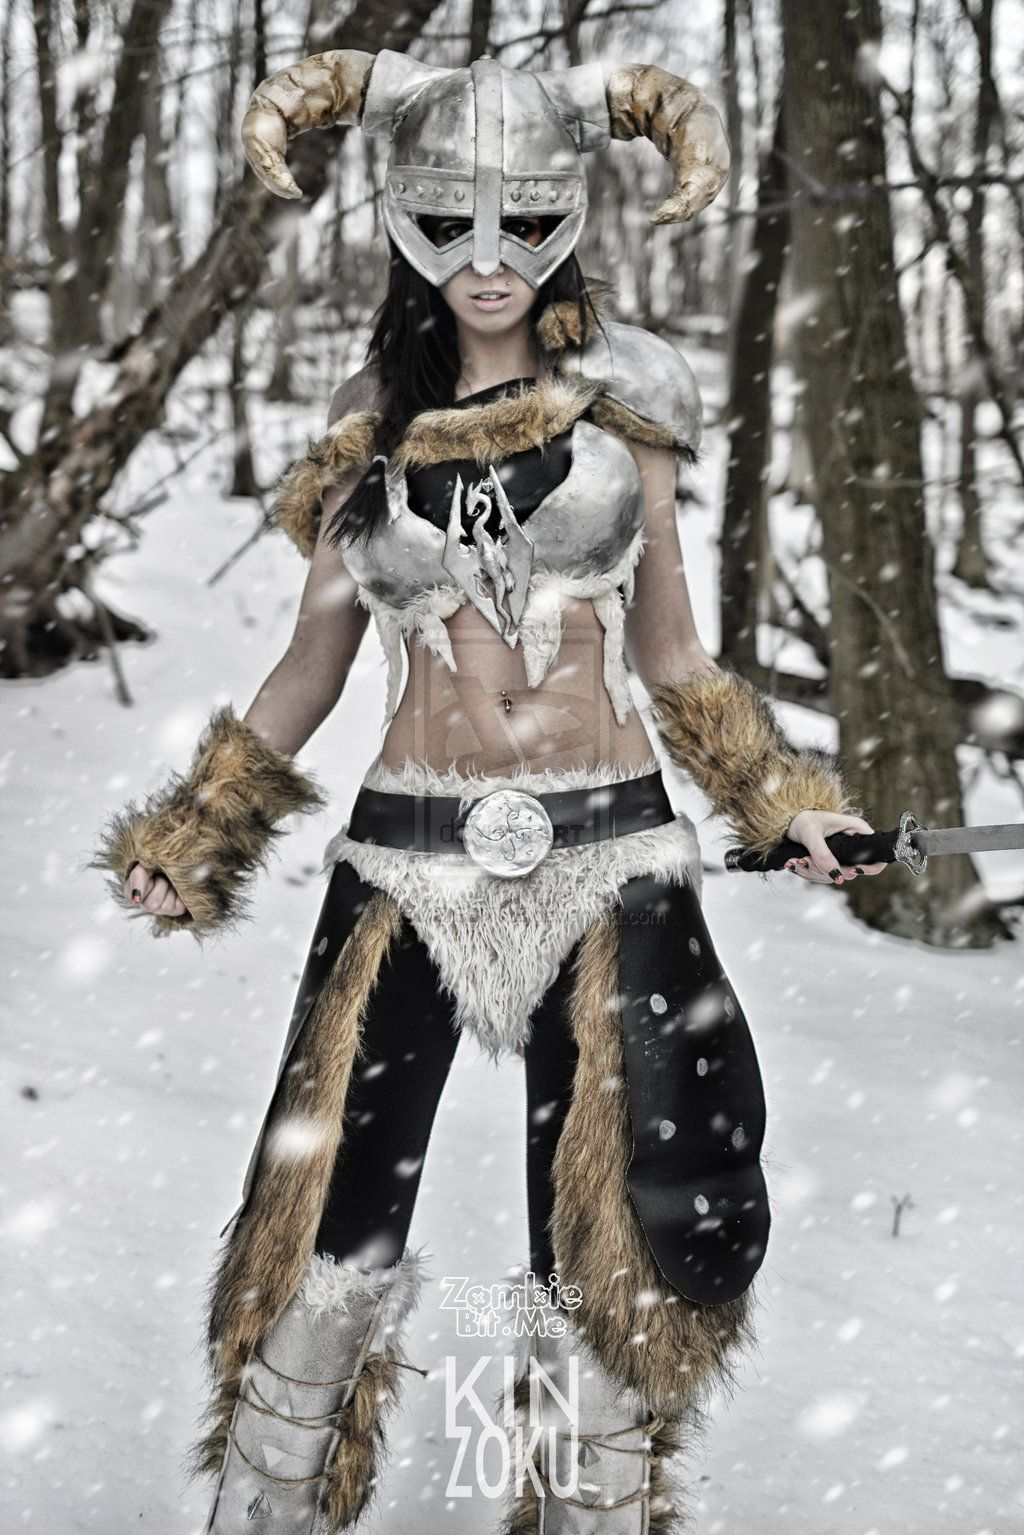 skyrim cosplay | iron helmet and leather armor inspired | the rustle